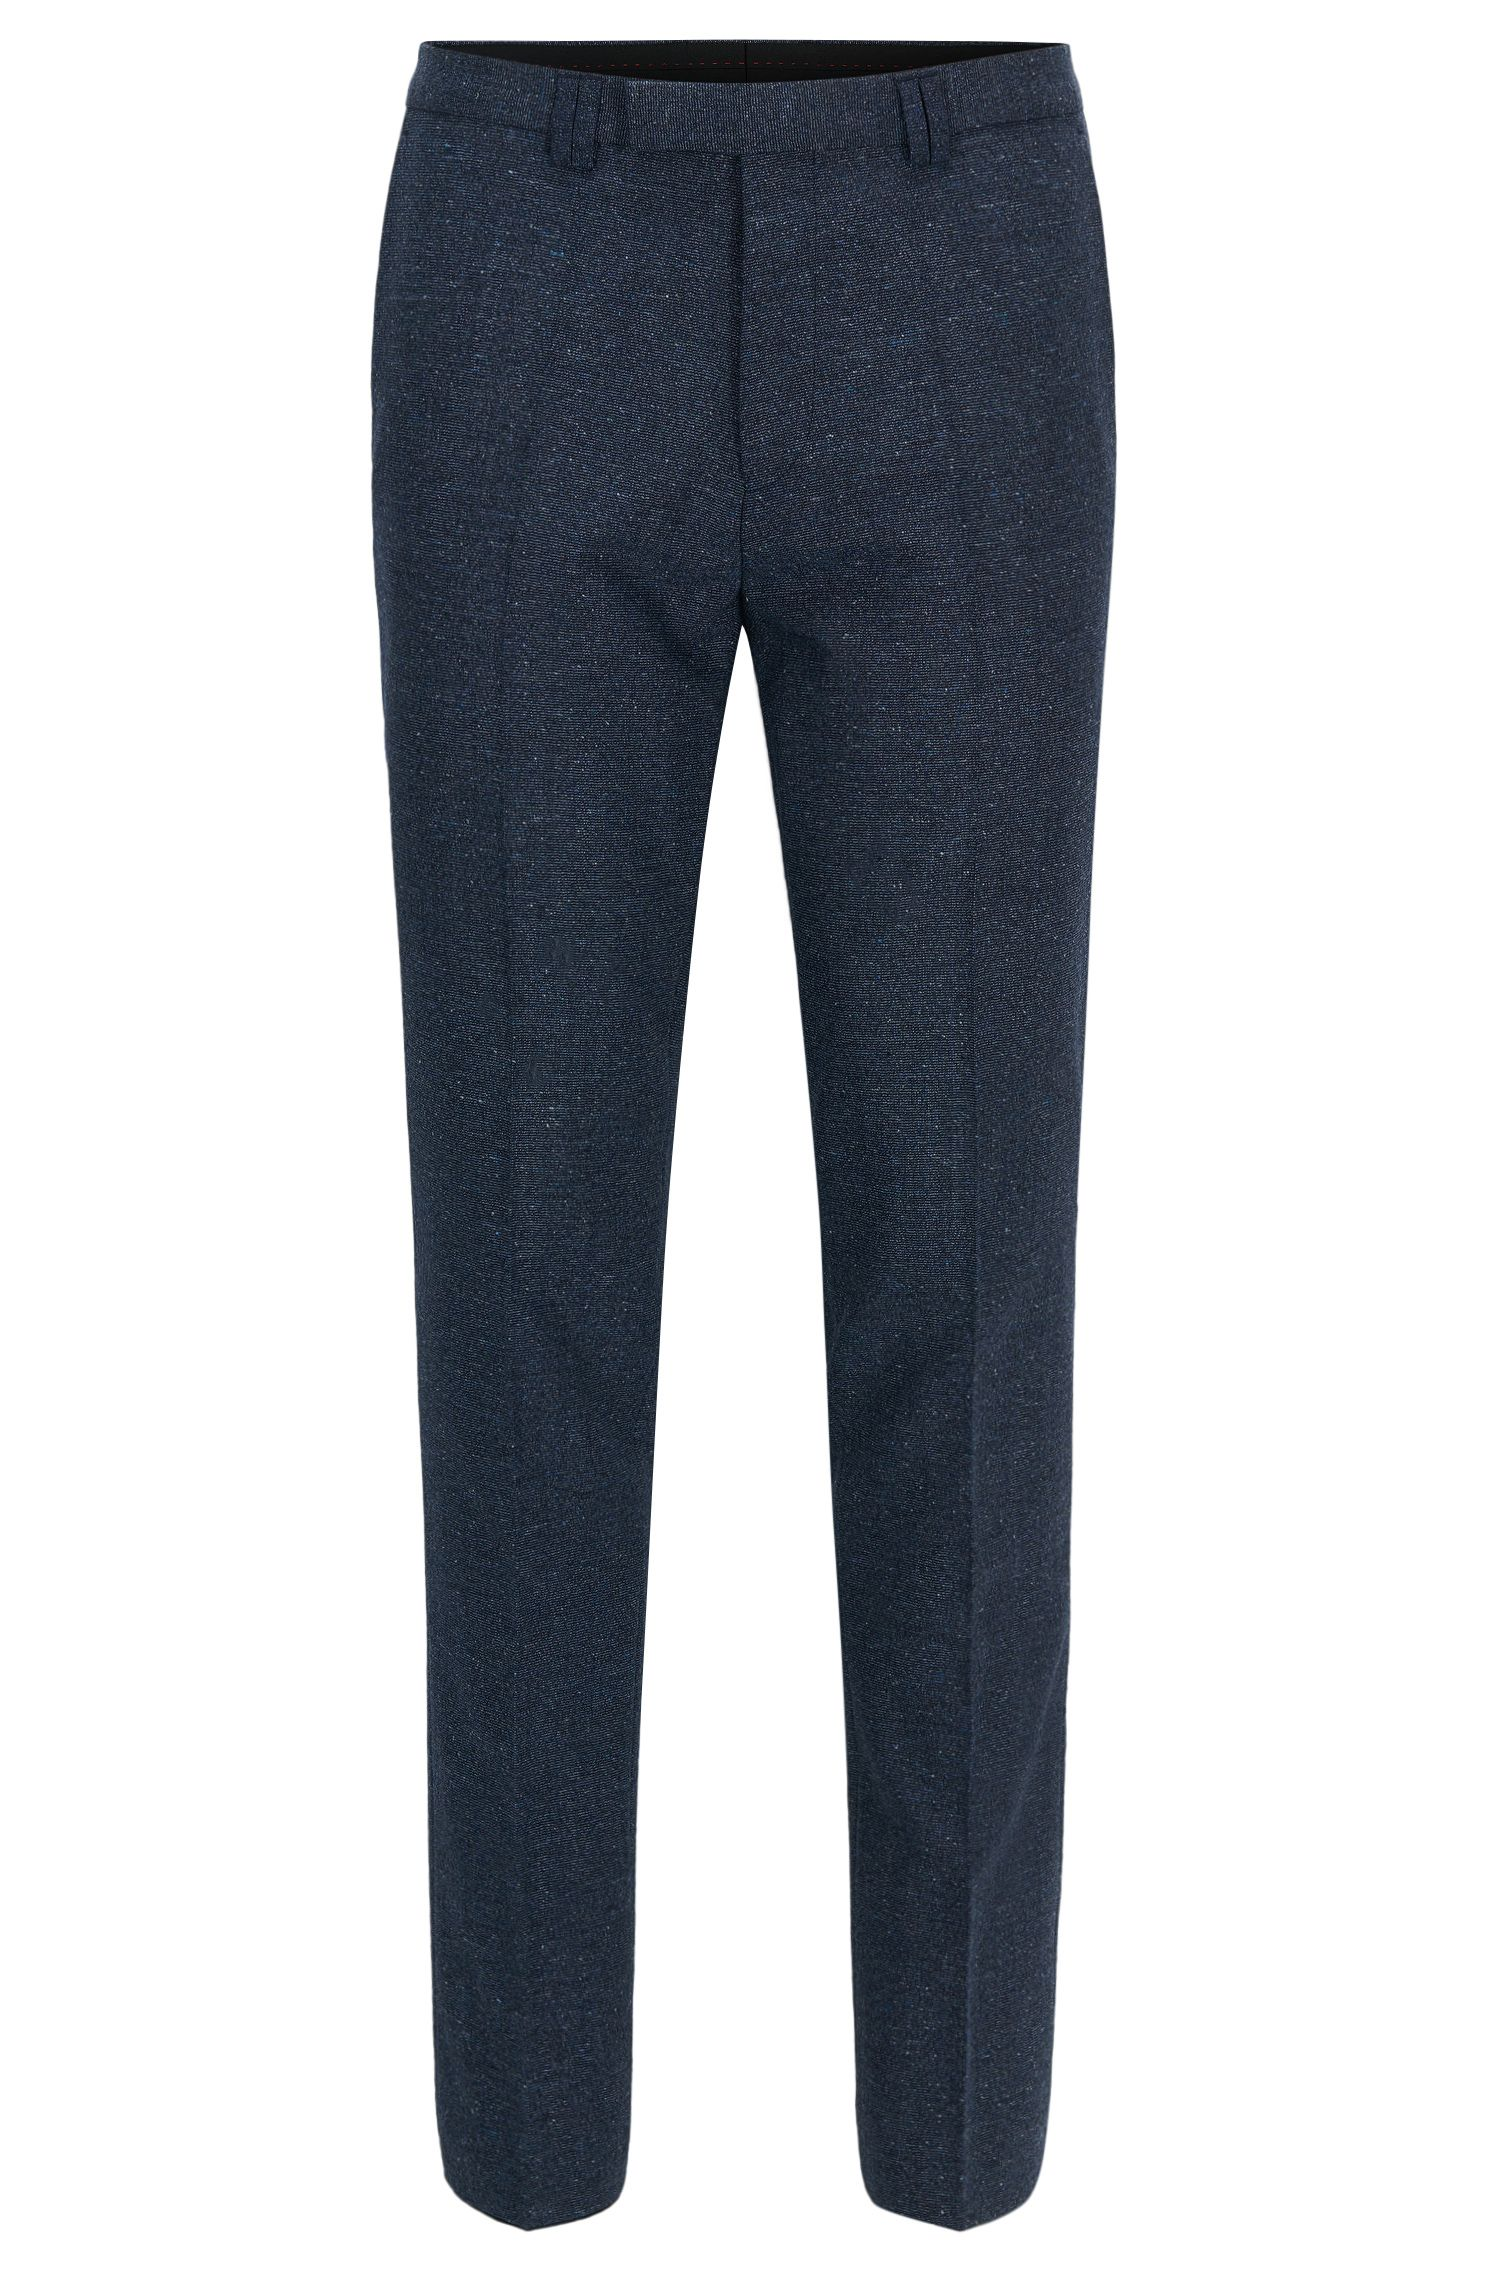 'Hesten' | Extra-Slim Fit, Wool Blend Pants